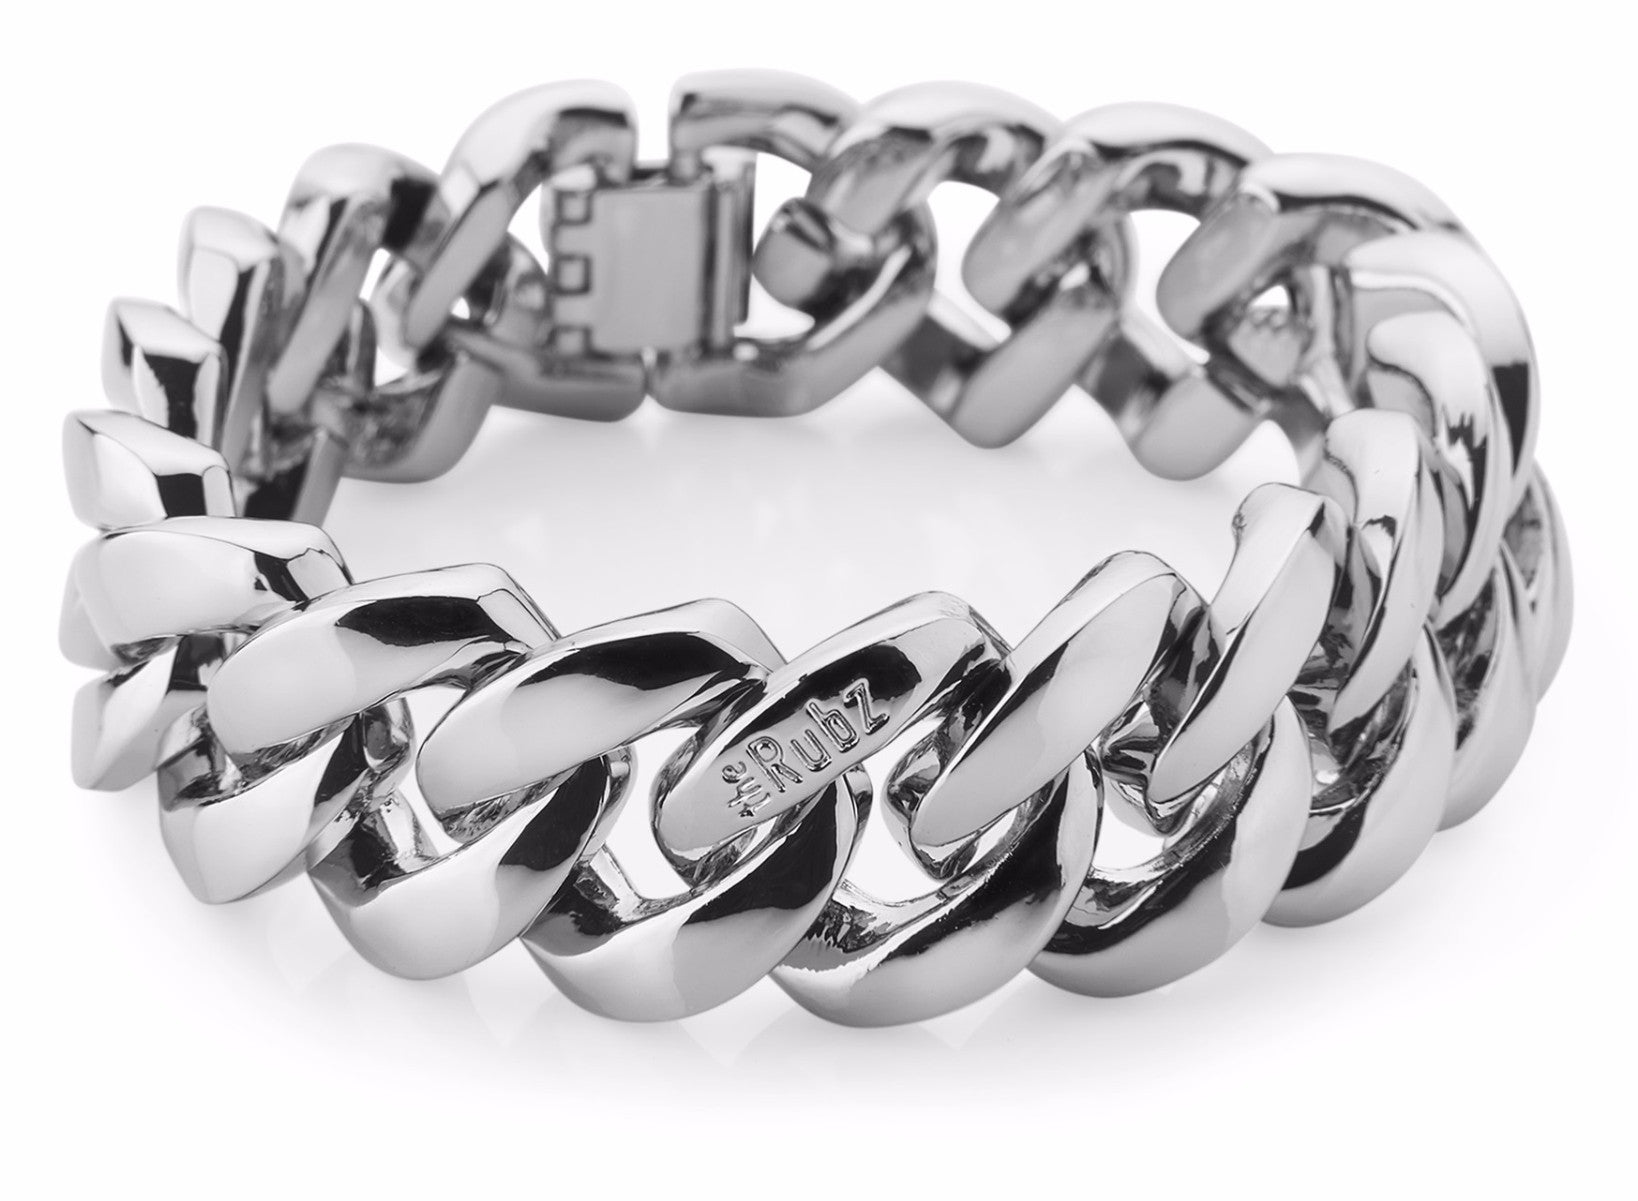 Mens ClassicMetal - Shiny Silver, The Rubz